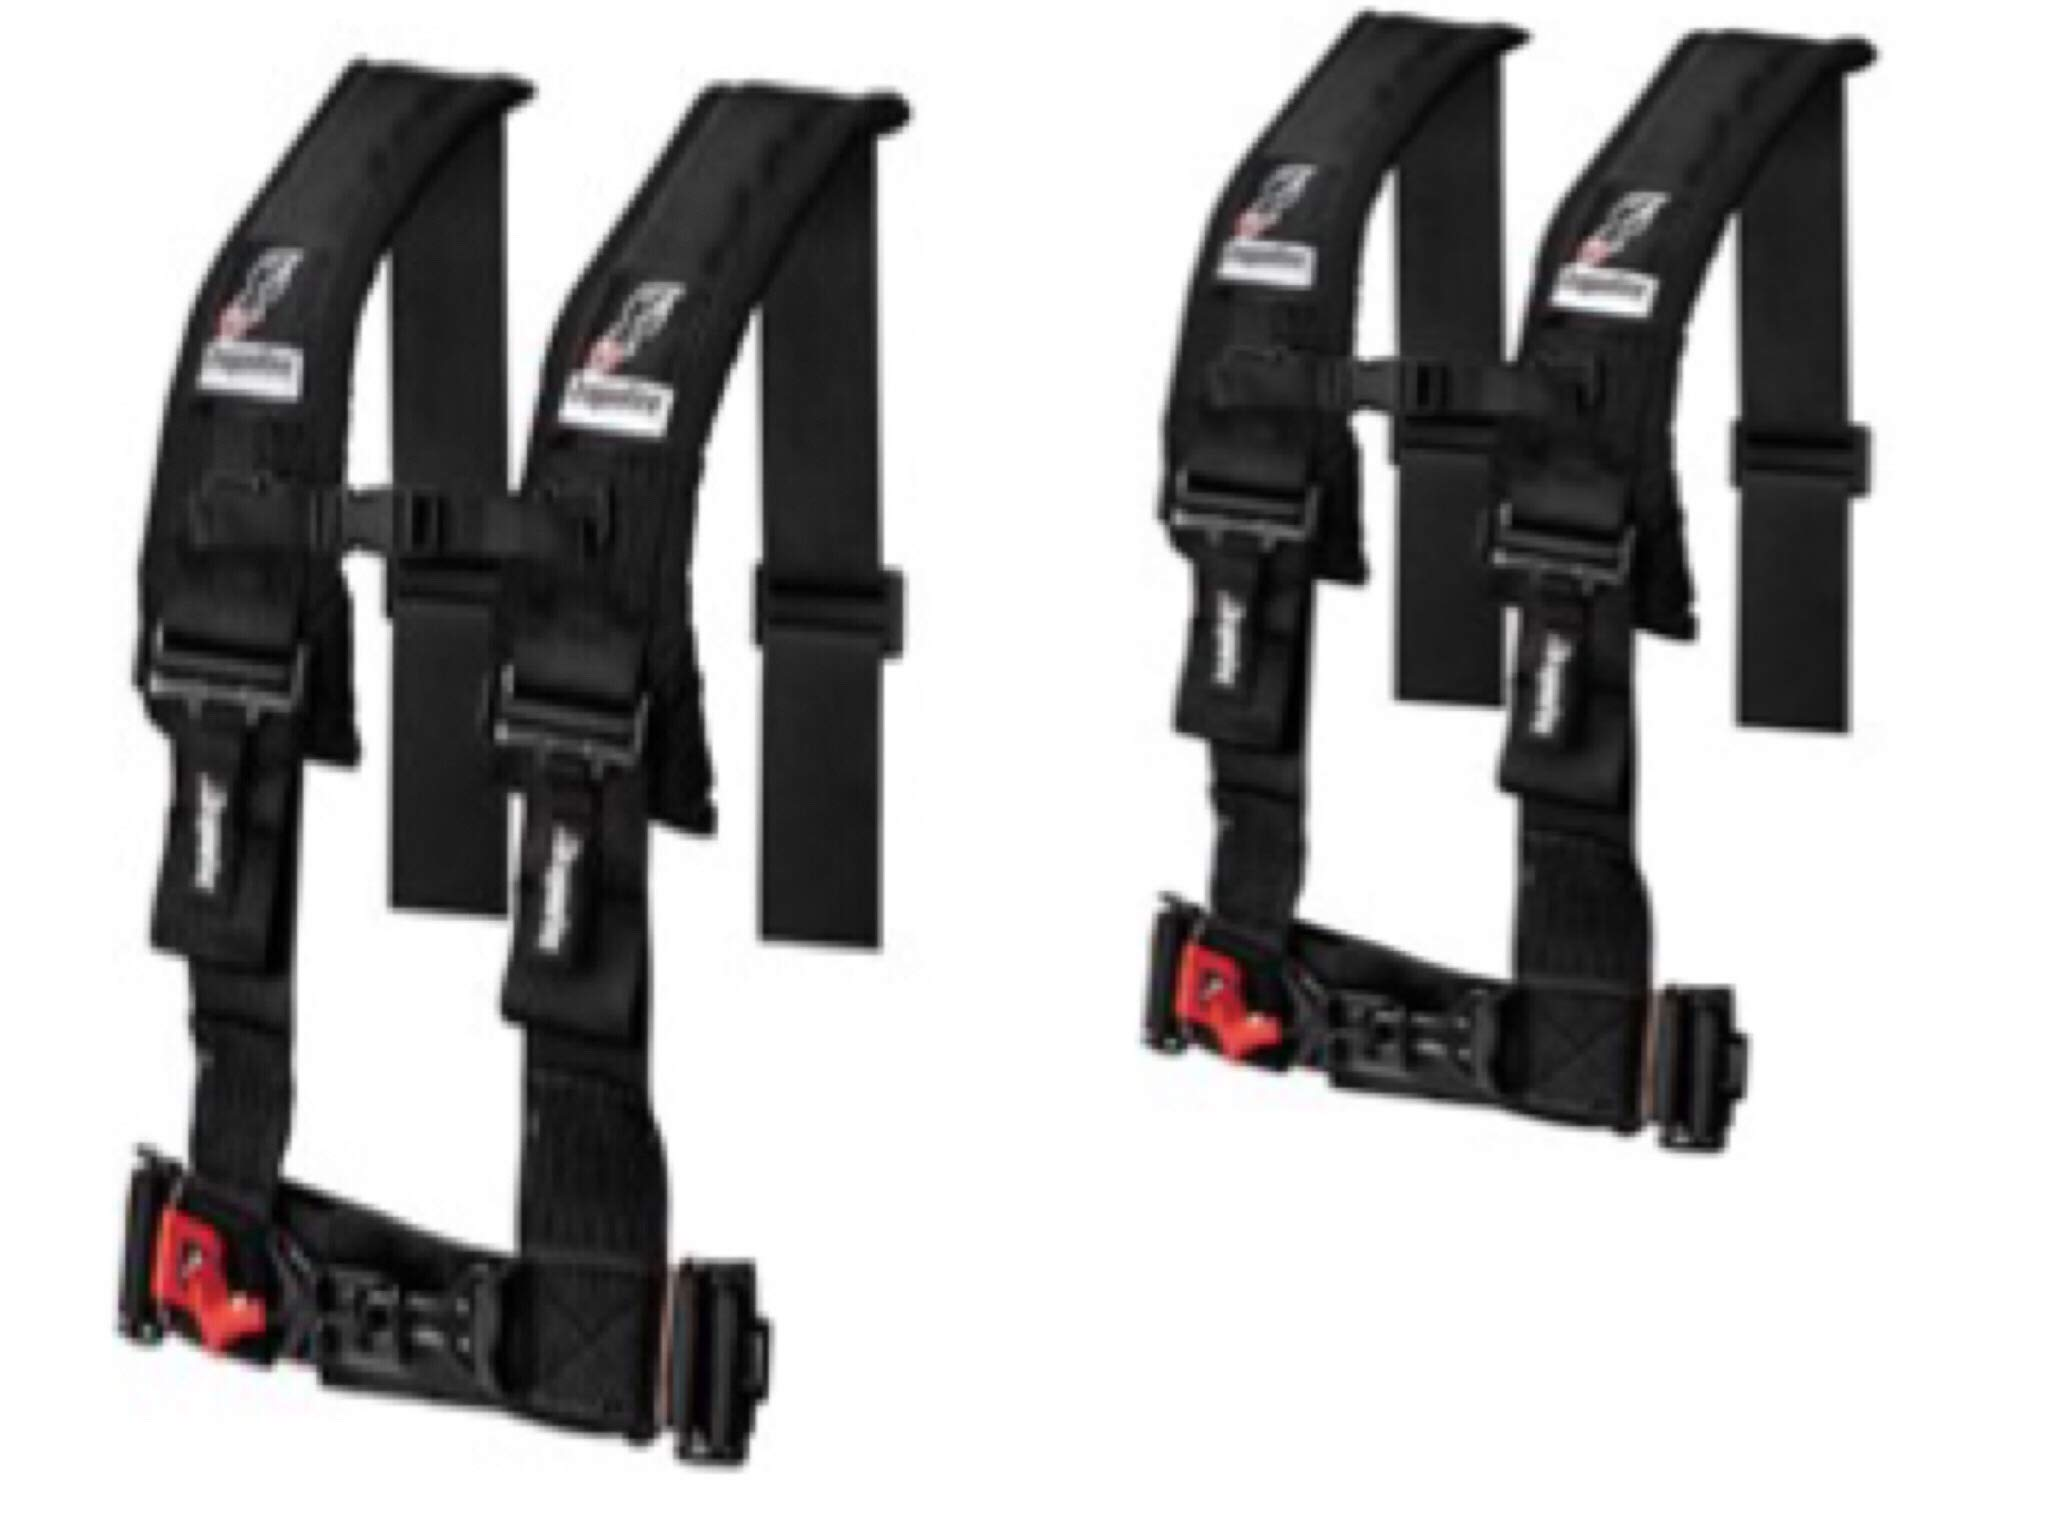 Set of 2 Dragonfire Racing 4-Point Harness 3'' H-Style Harness With Sternum Clip 3''Black For 2019 Honda Talon